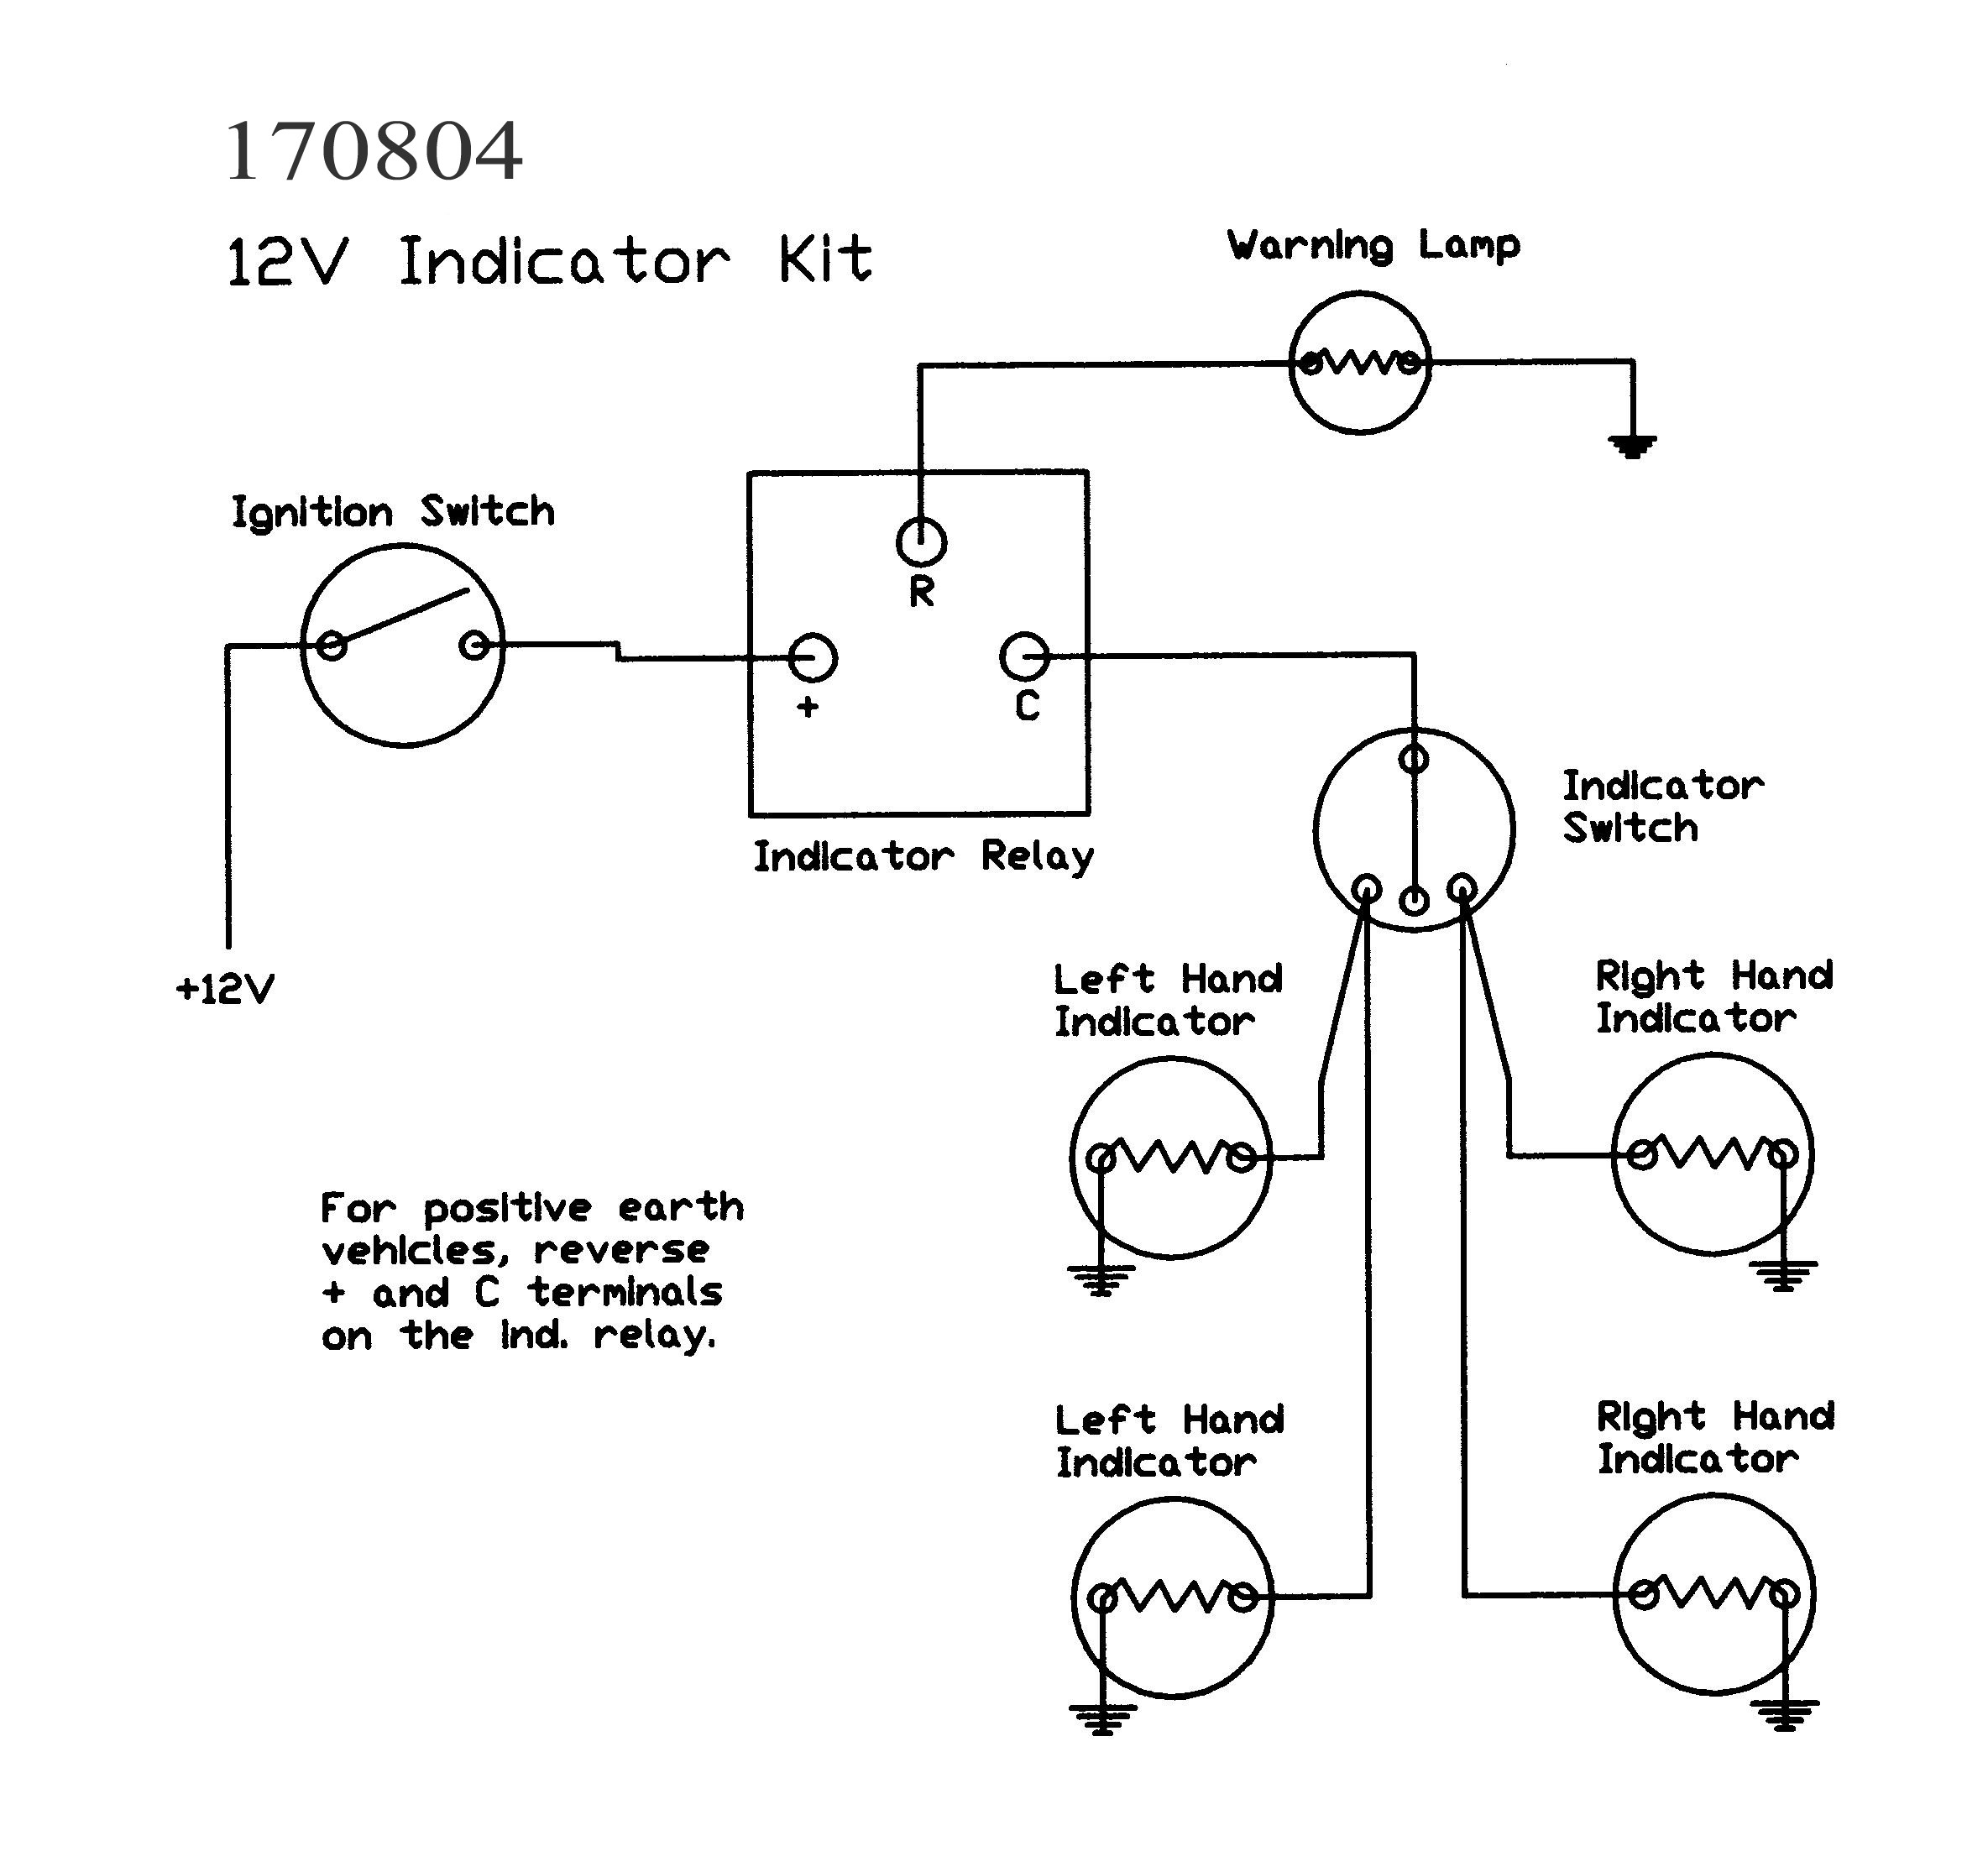 Pin Led Wiring Diagram on 120v lighted toggle switch wiring diagram, xlr cable wiring diagram, dimmer switch wiring diagram, part winding starter 3 phase wiring diagram,